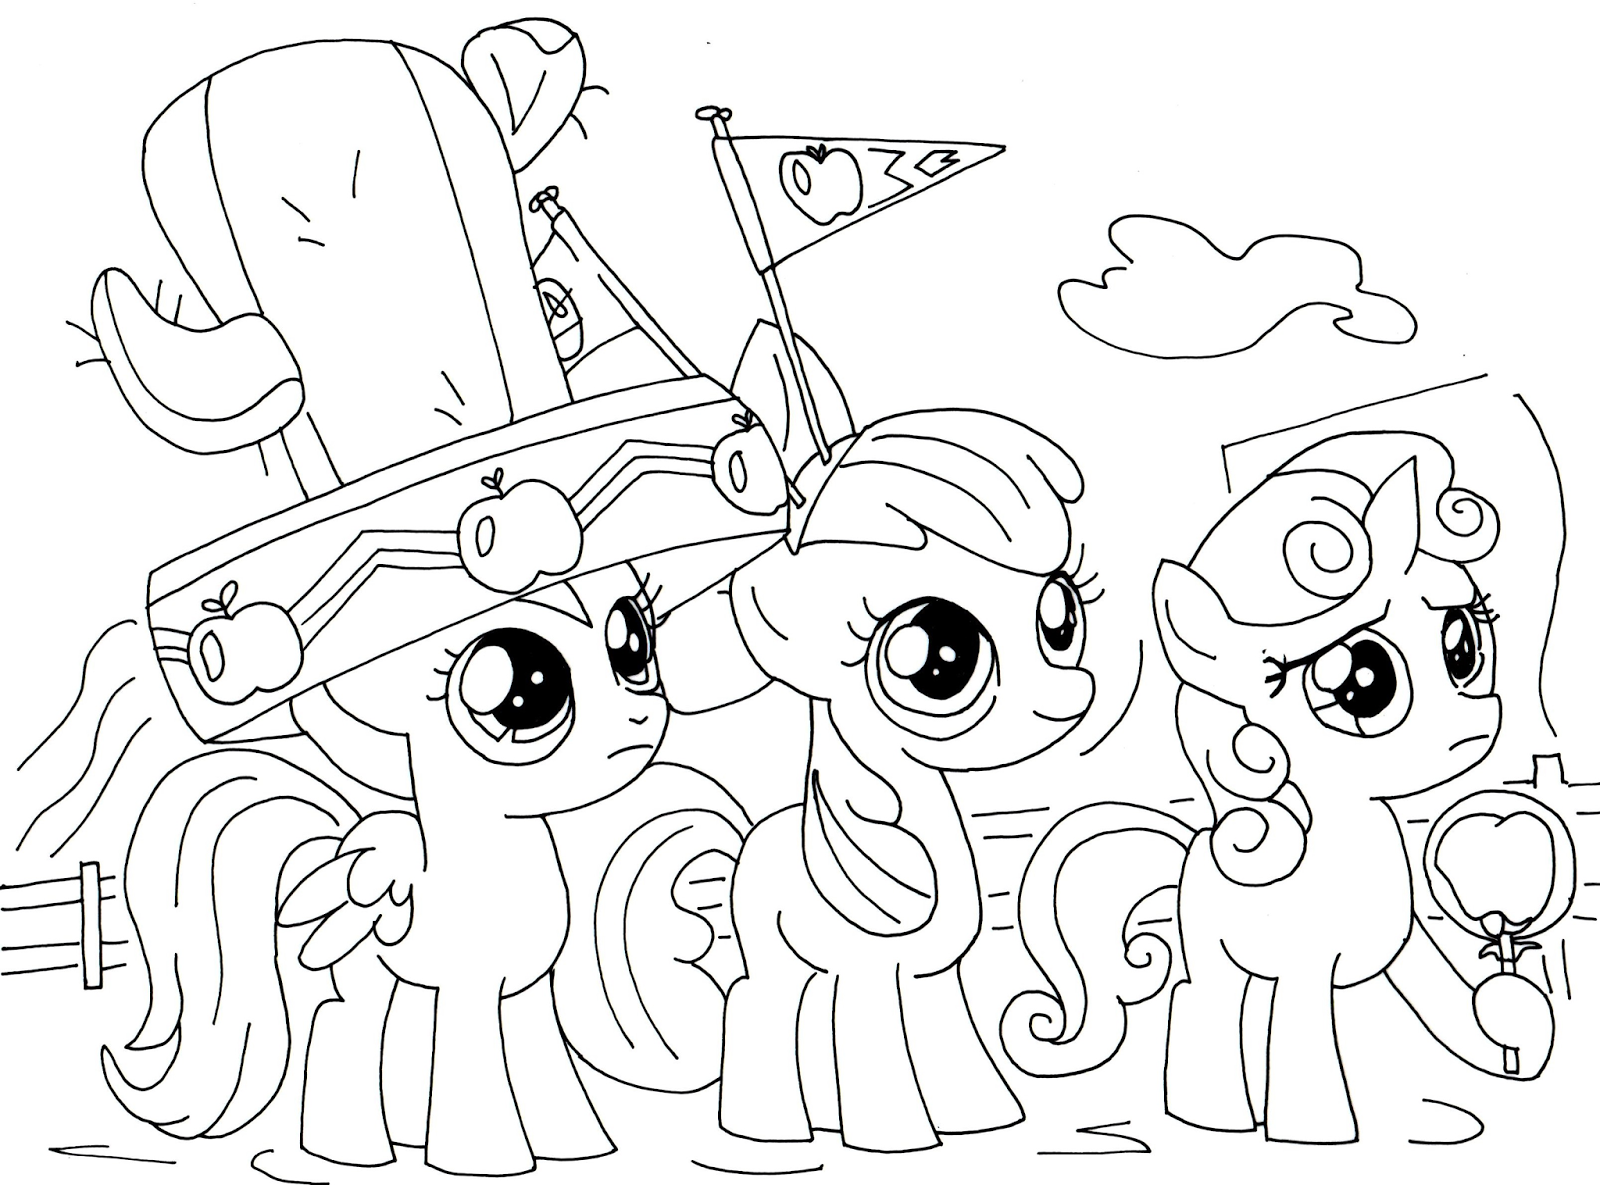 My Little Pony Coloring Pages Cutie Mark : My little pony coloring pages cutie mark crusaders